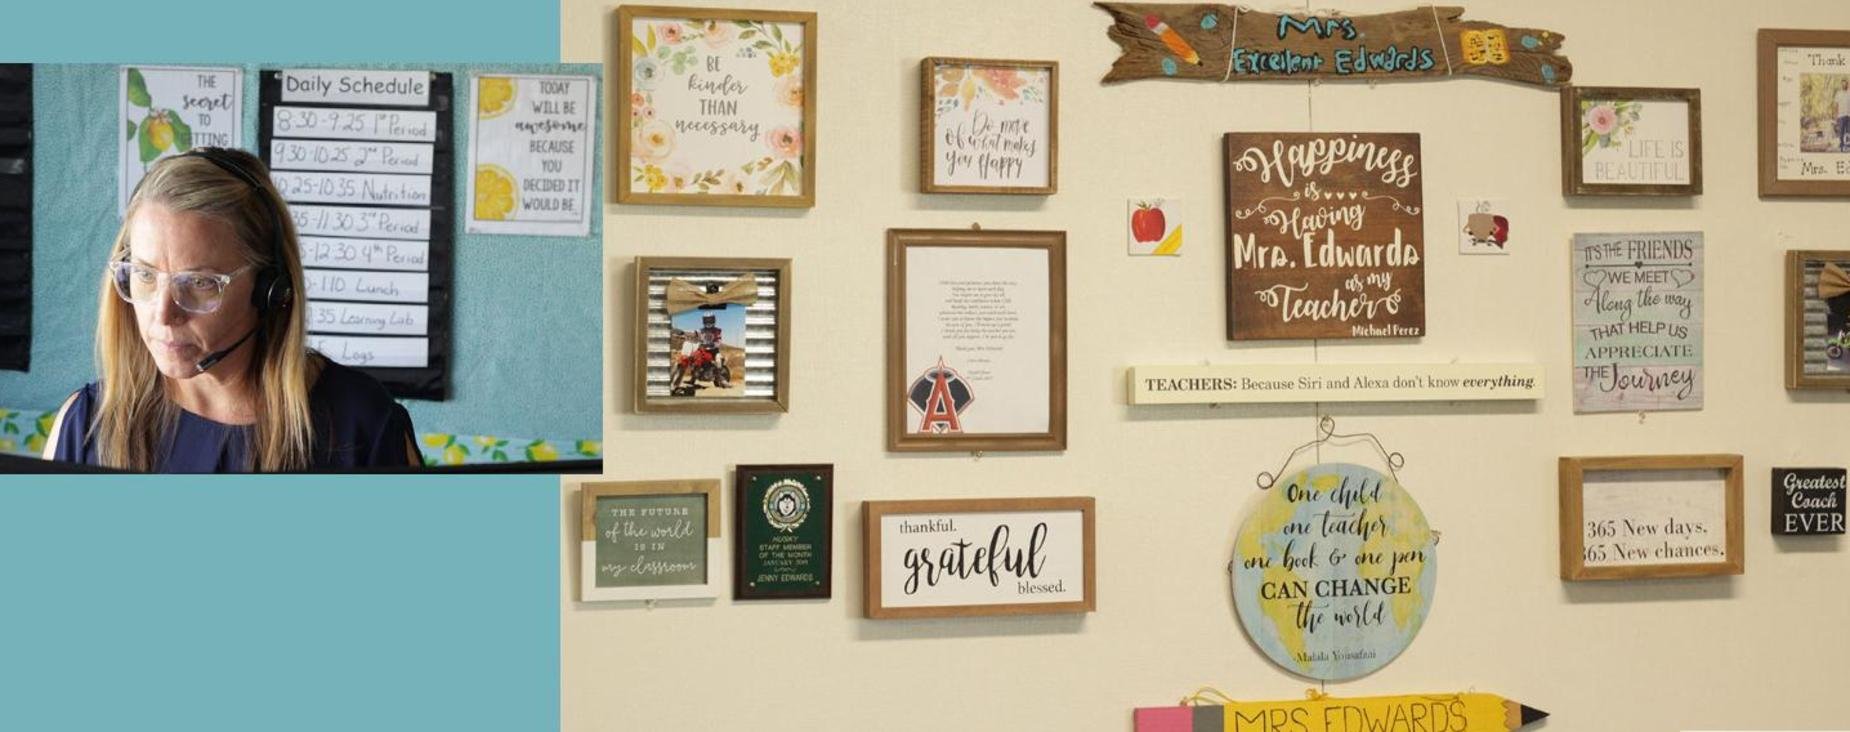 Mrs. Edwards at work, and her classroom wall